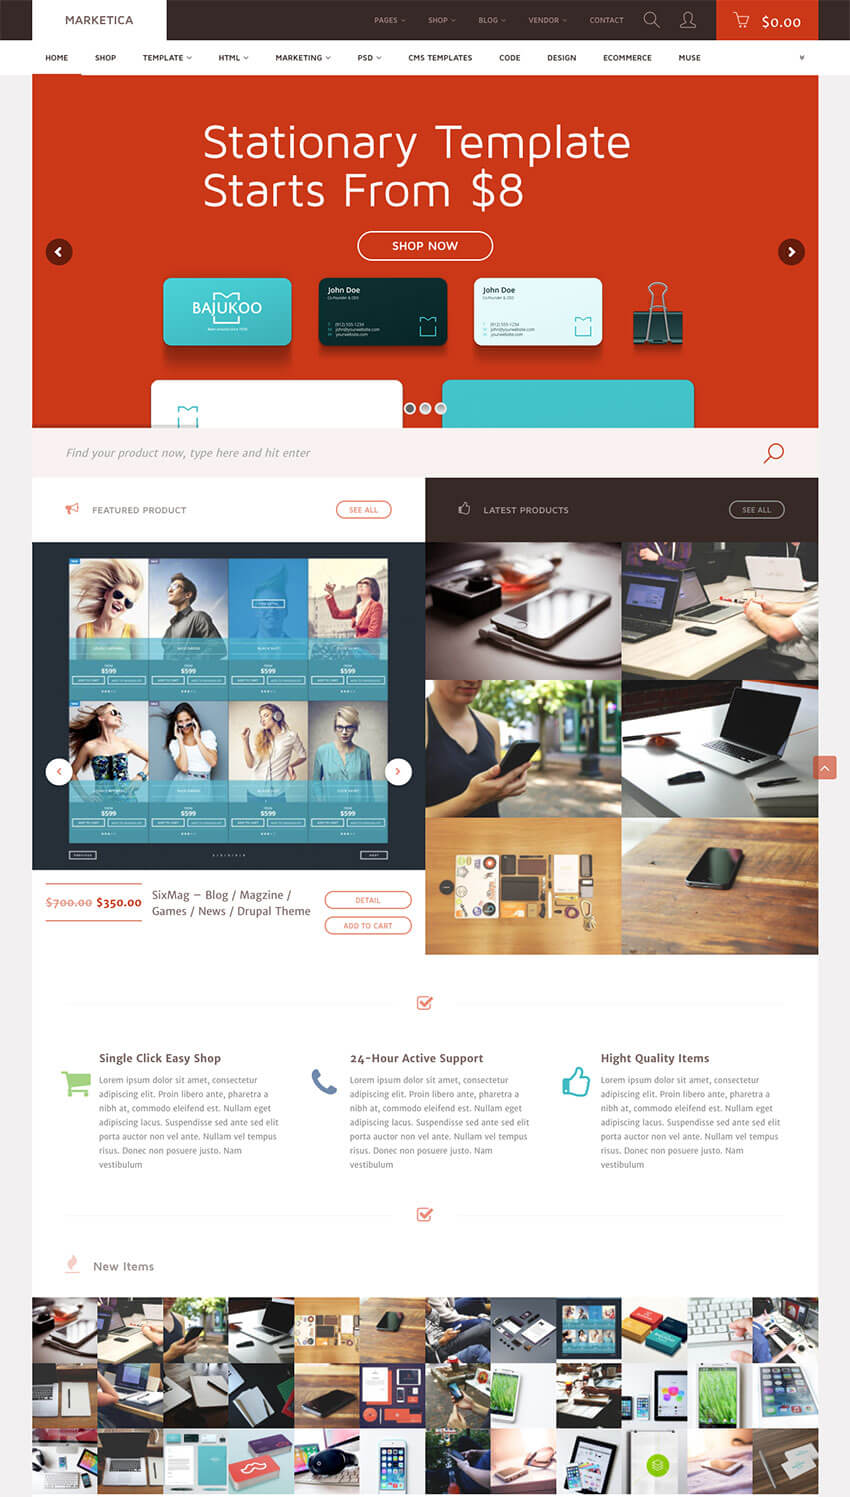 Marketica eCommerce Marketplace WordPress Theme